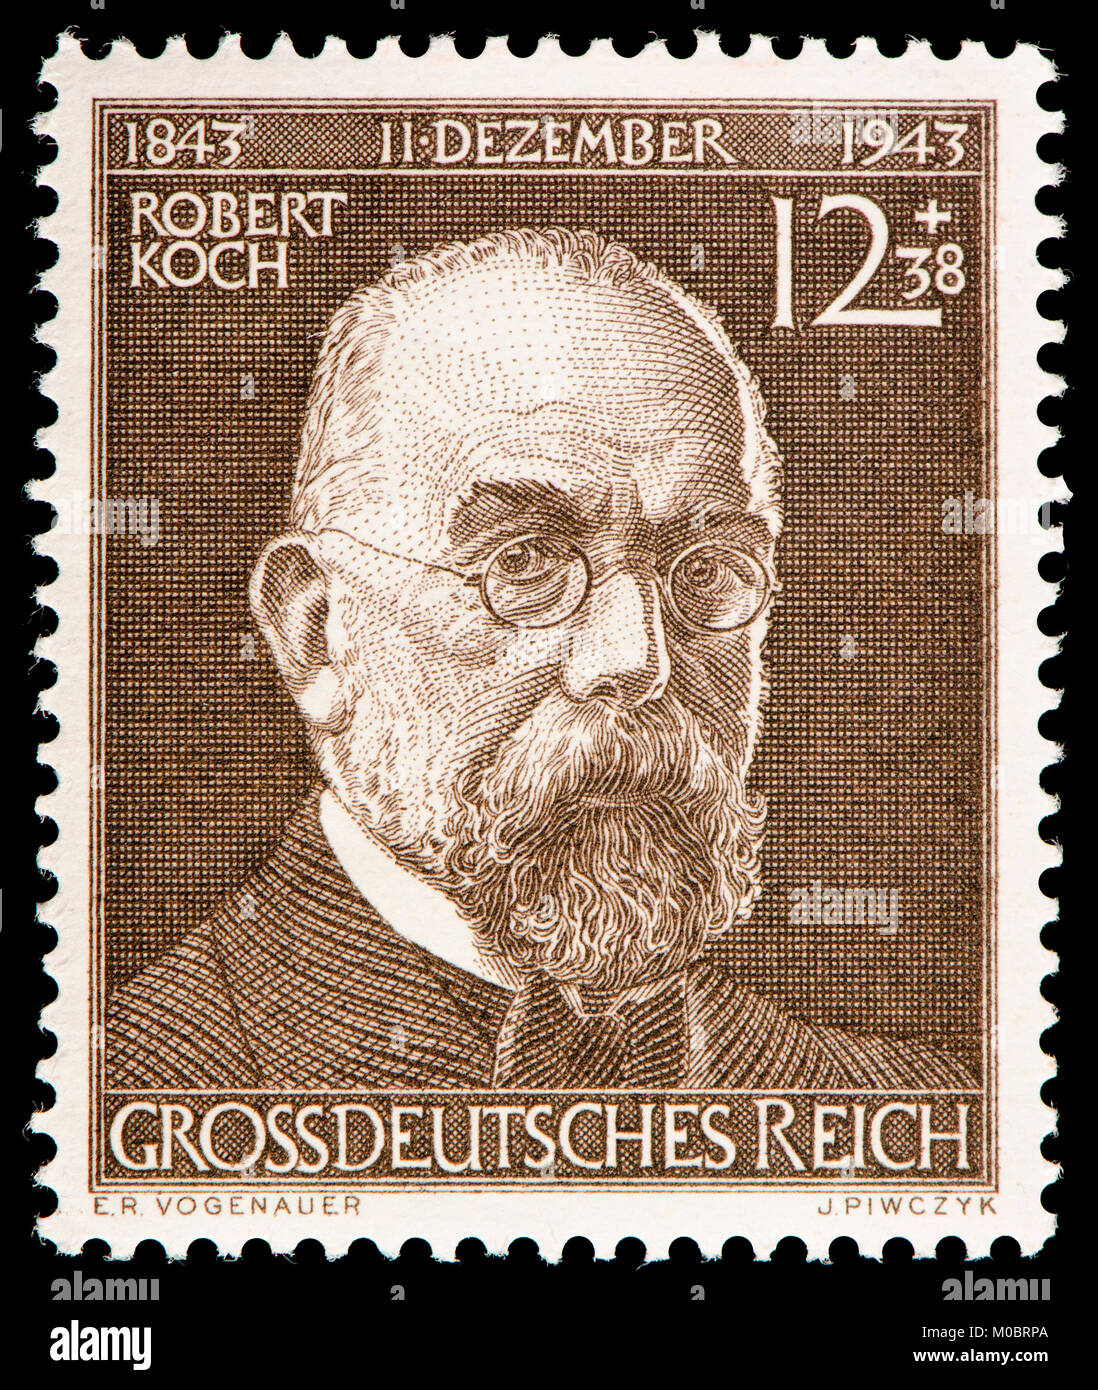 Hermann Koch Deutsche Briefmarke 1944 Robert Heinrich Hermann Koch 1843